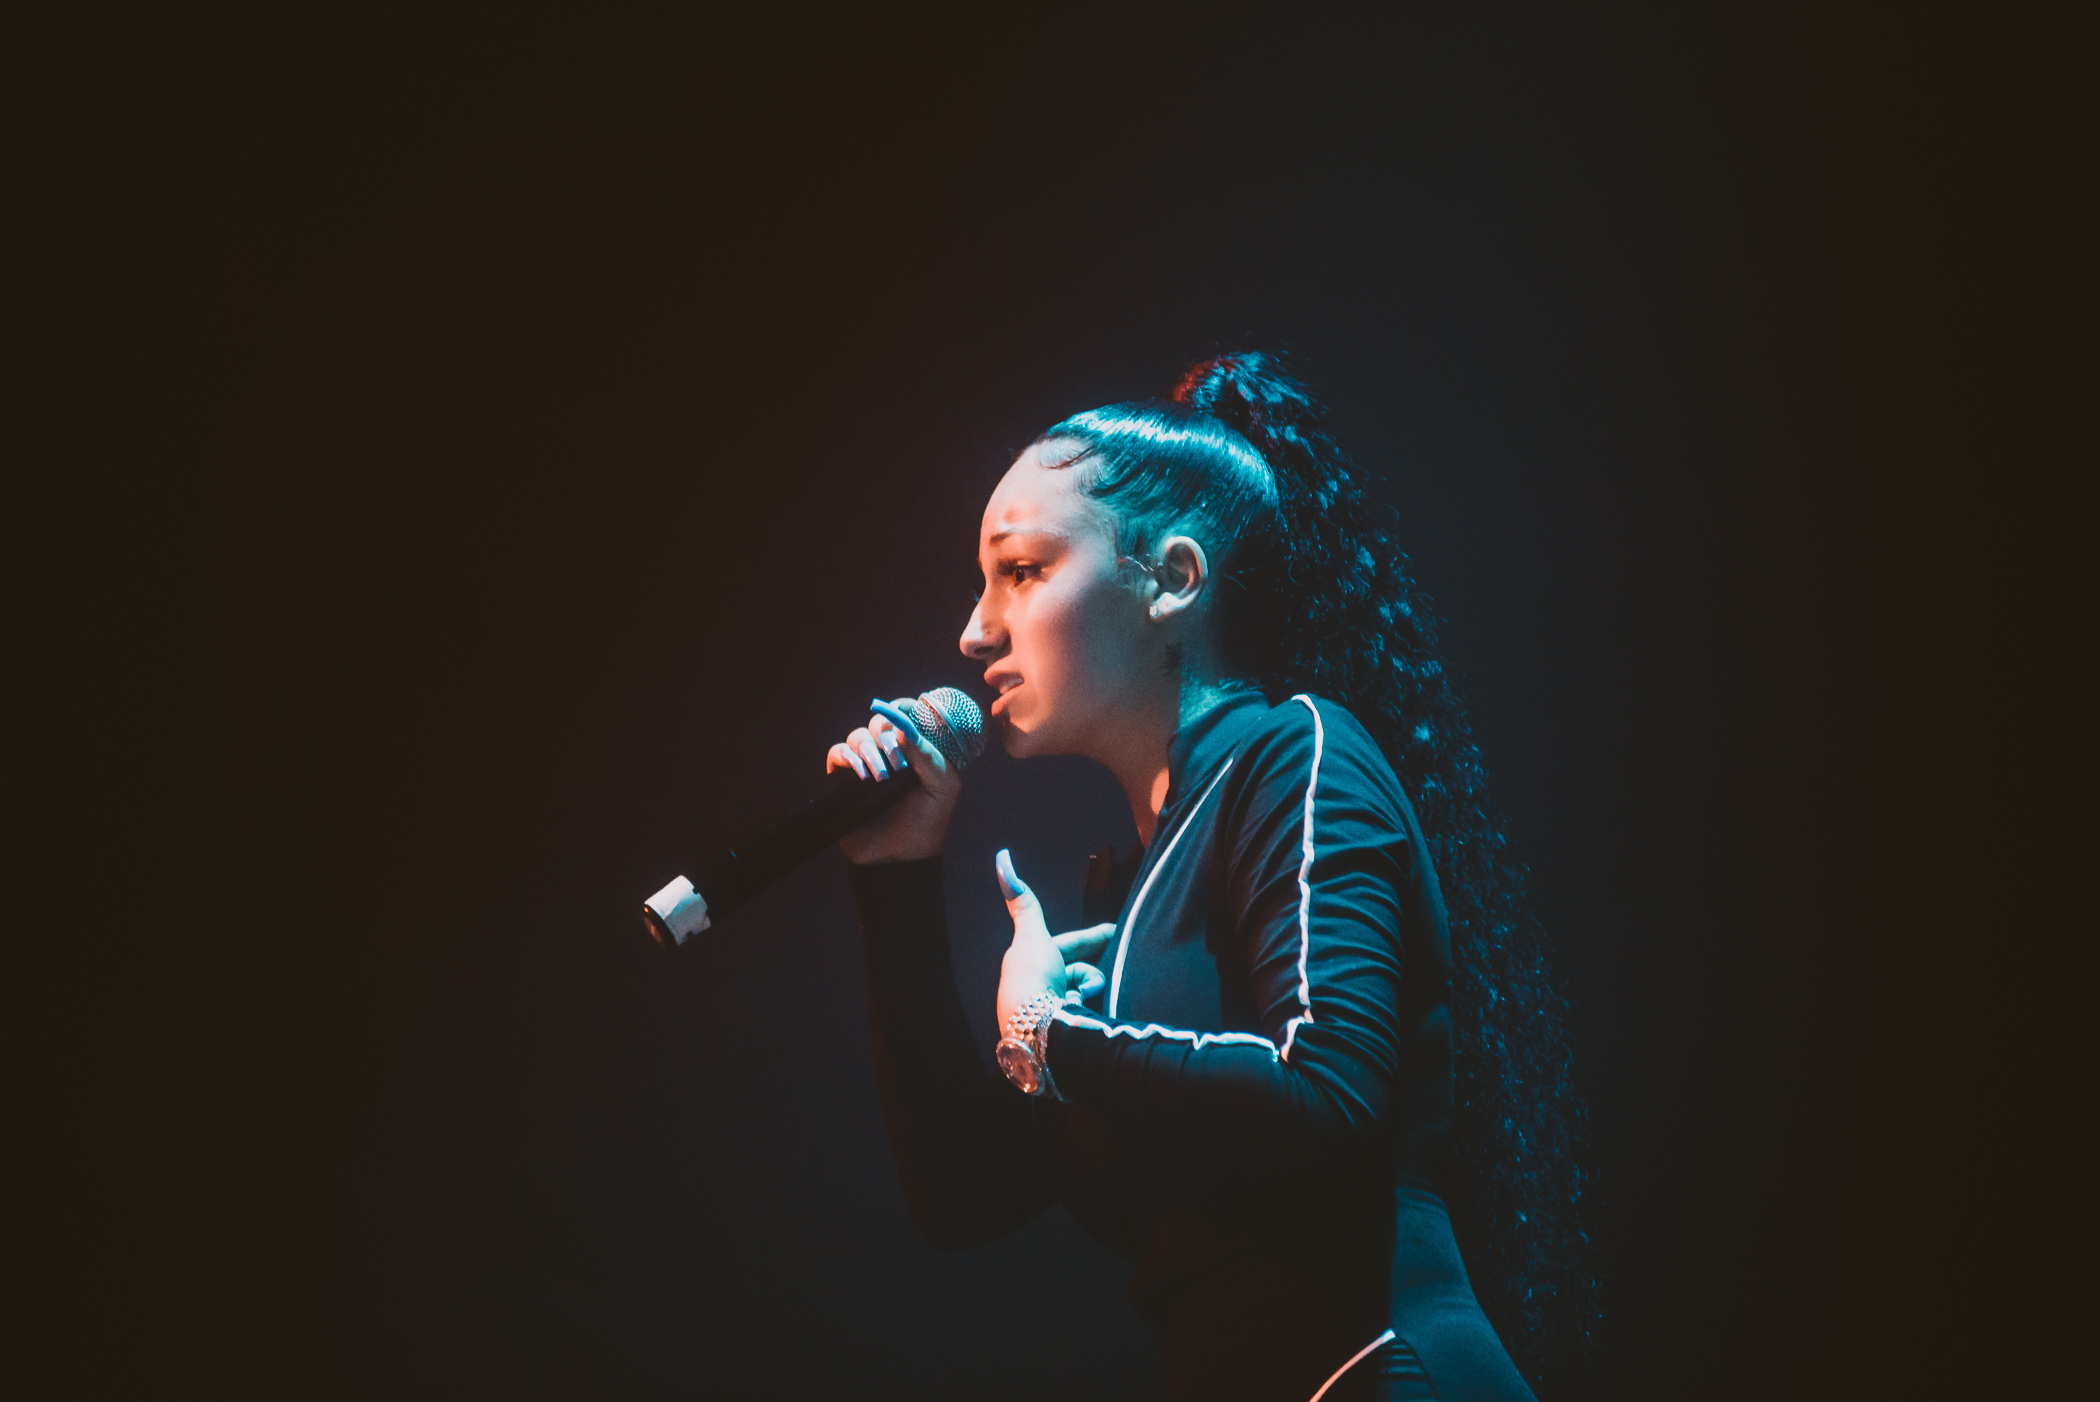 1_Bhad_Bhabie-VENUE-Timothy_Nguyen-20190510 (44 of 45).JPG